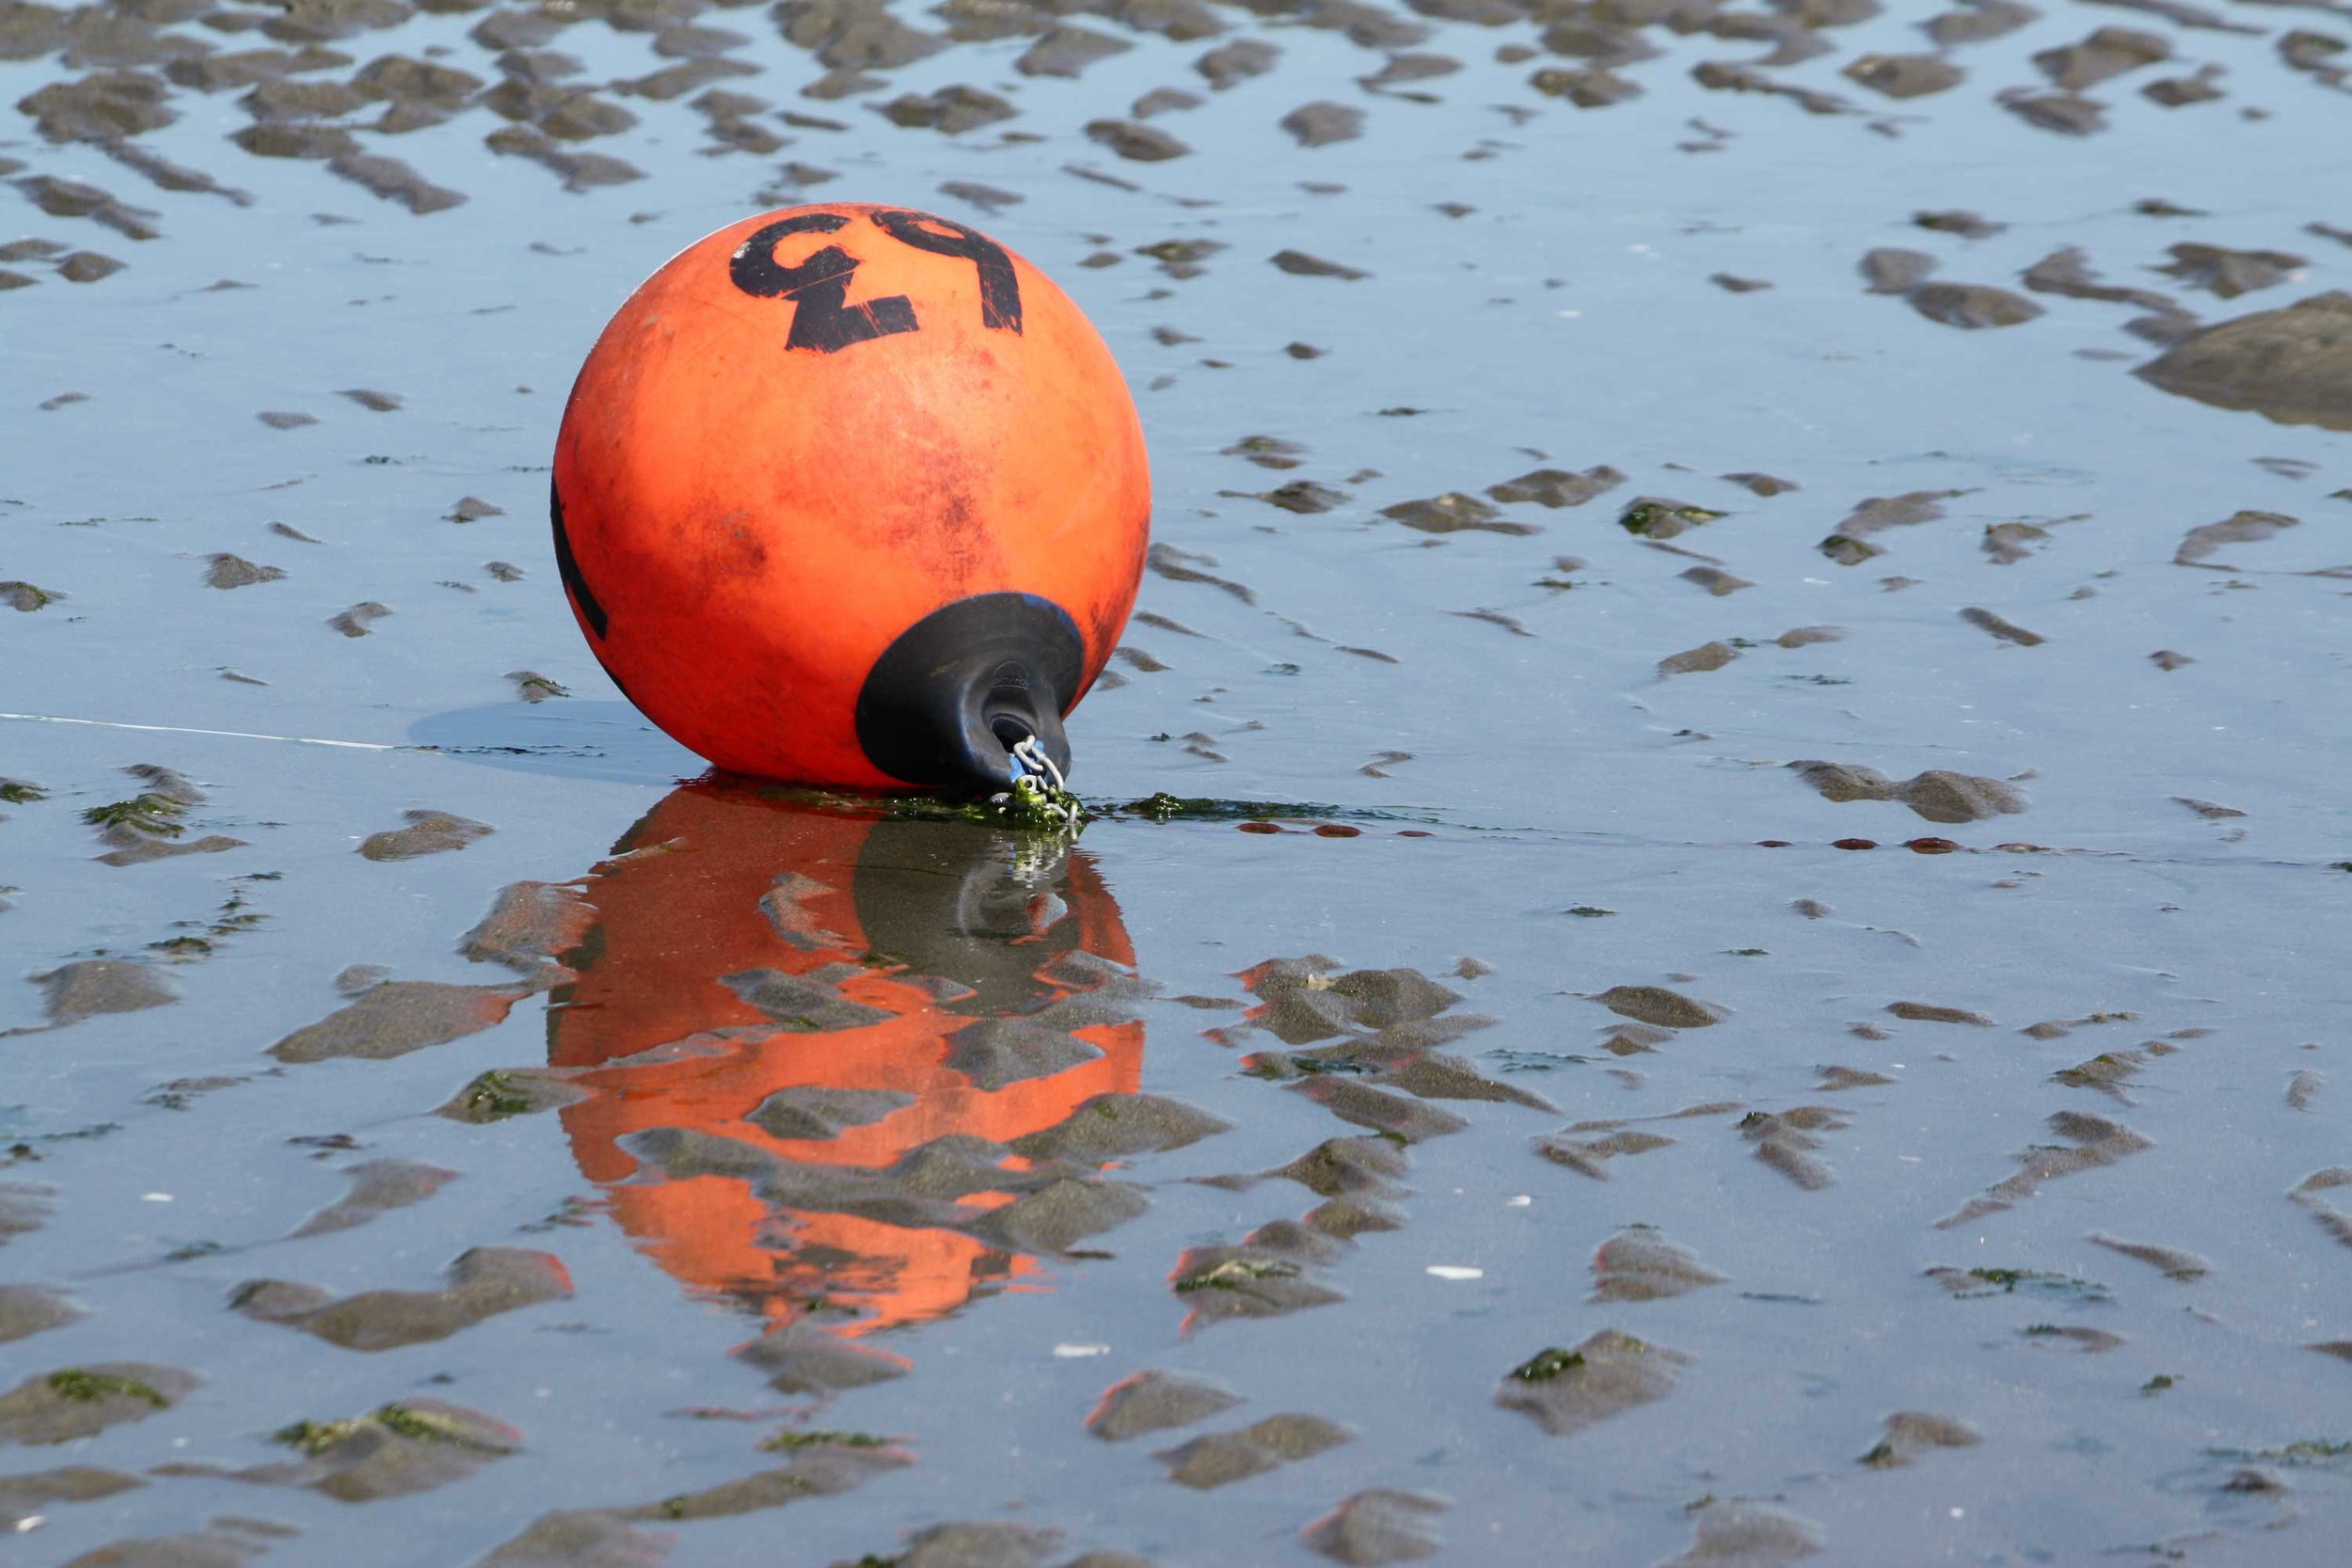 Orange-buoy-on-wet-sand_web.jpg